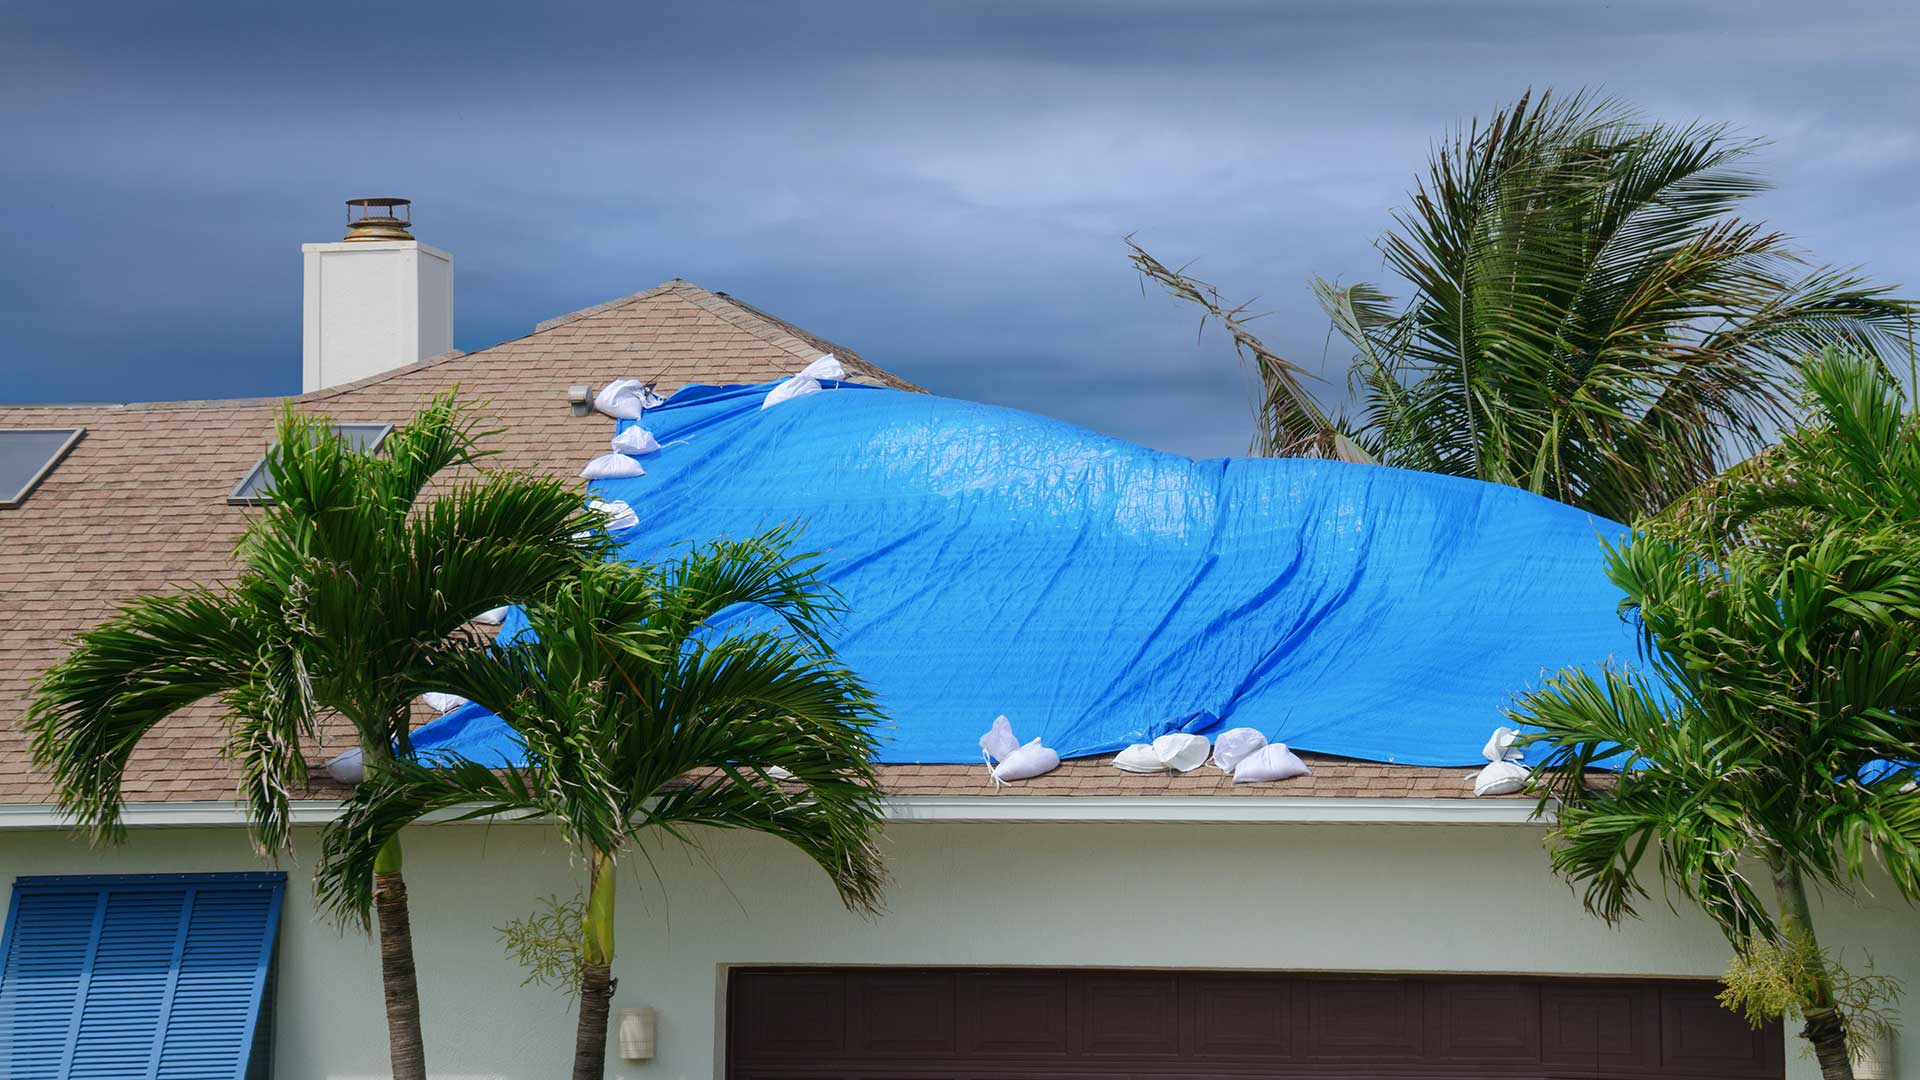 What Are the Common Causes of Roof Leaks in Central FL